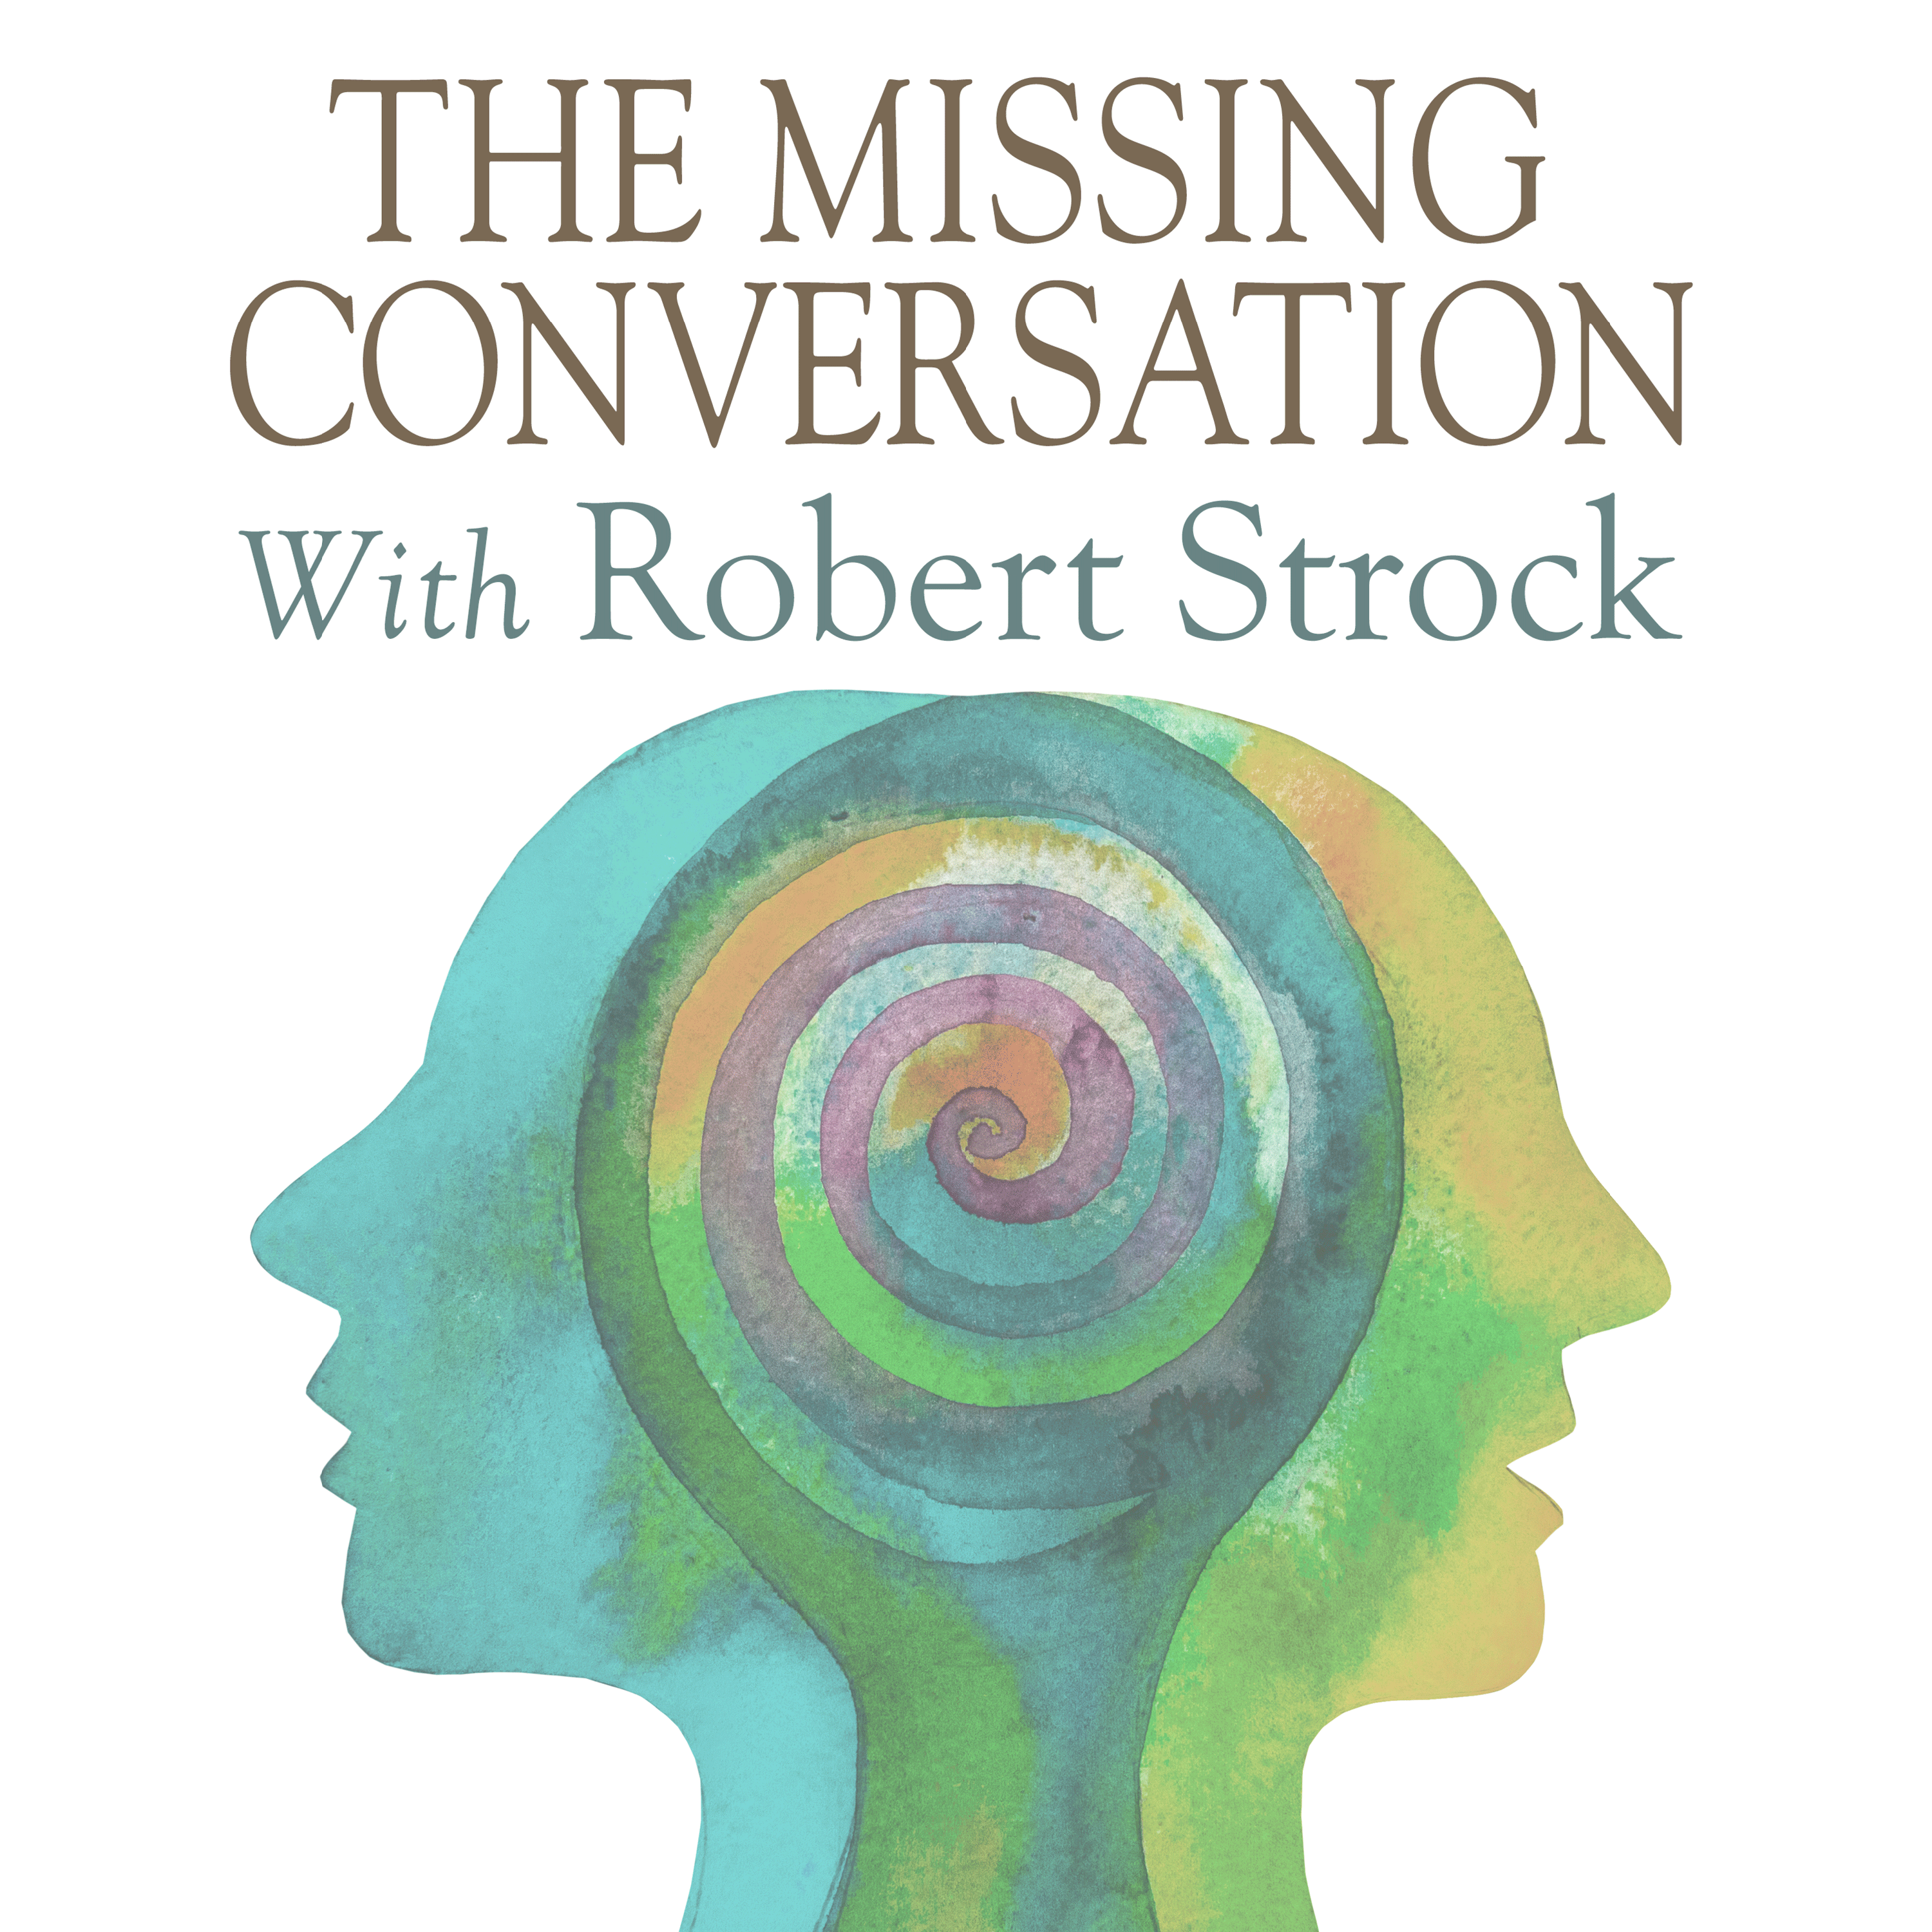 The Missing Conversation